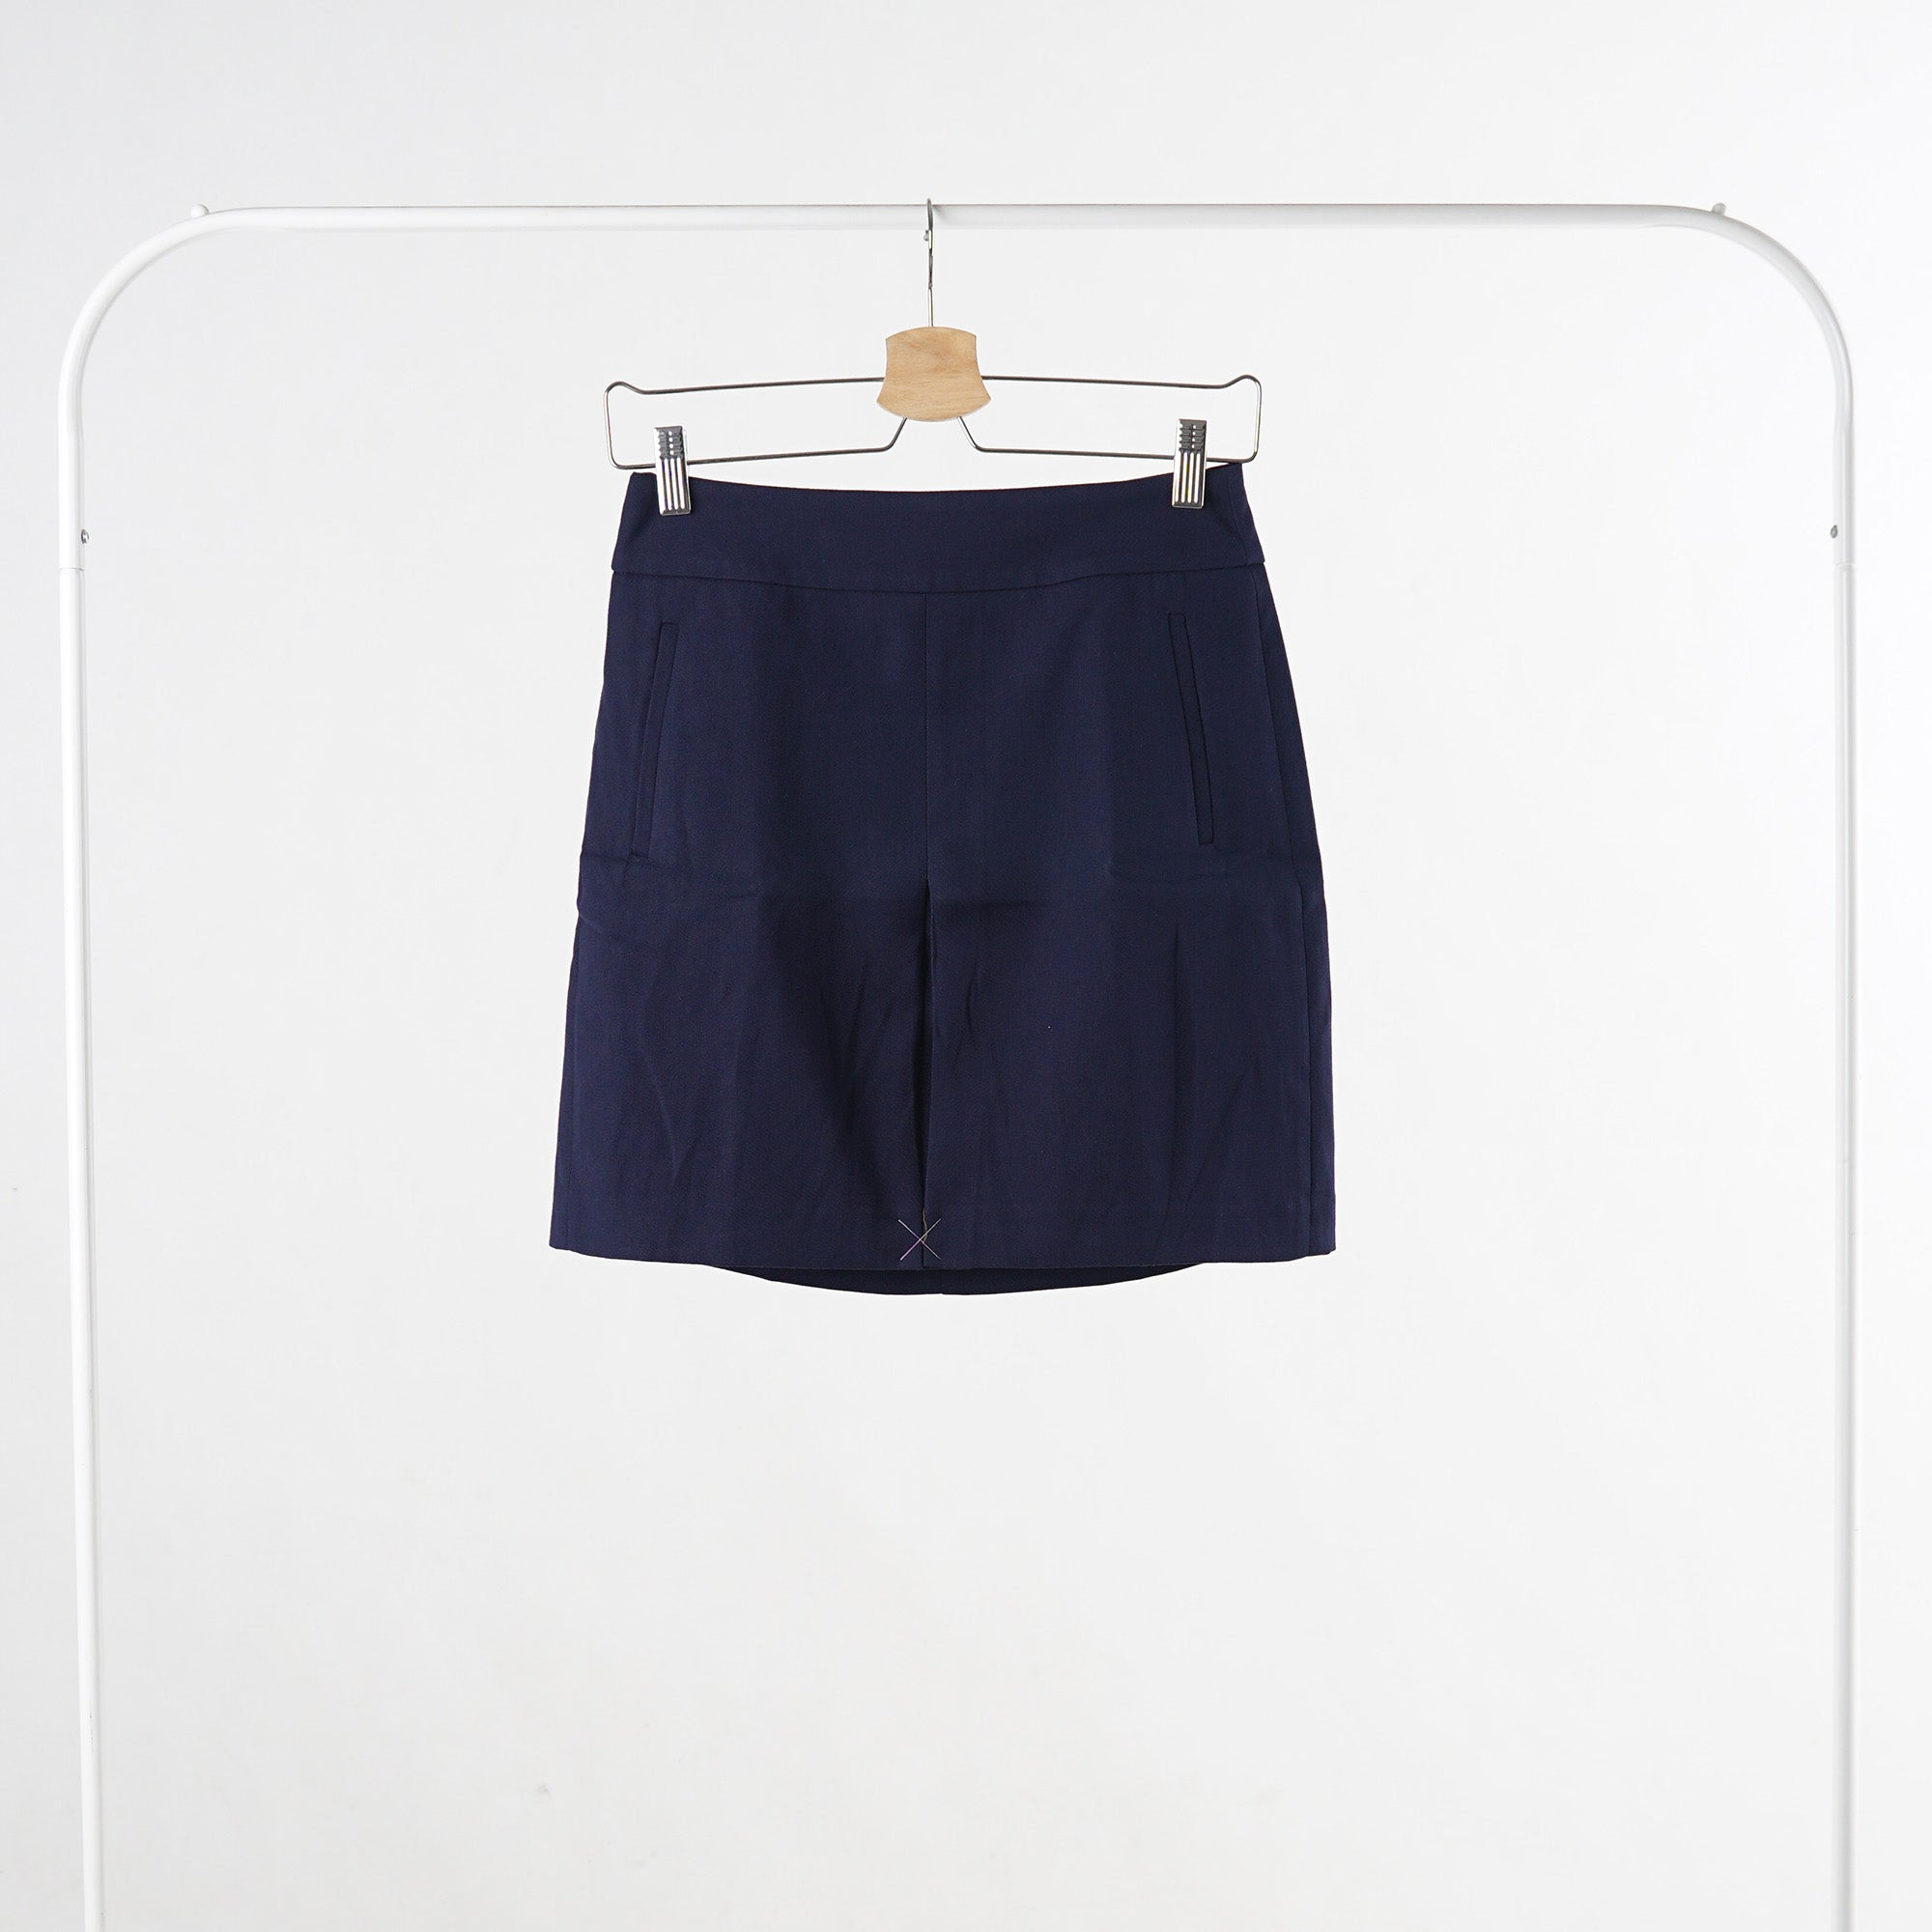 Rok Wanita - Navy Women Skirt (MLR 08)